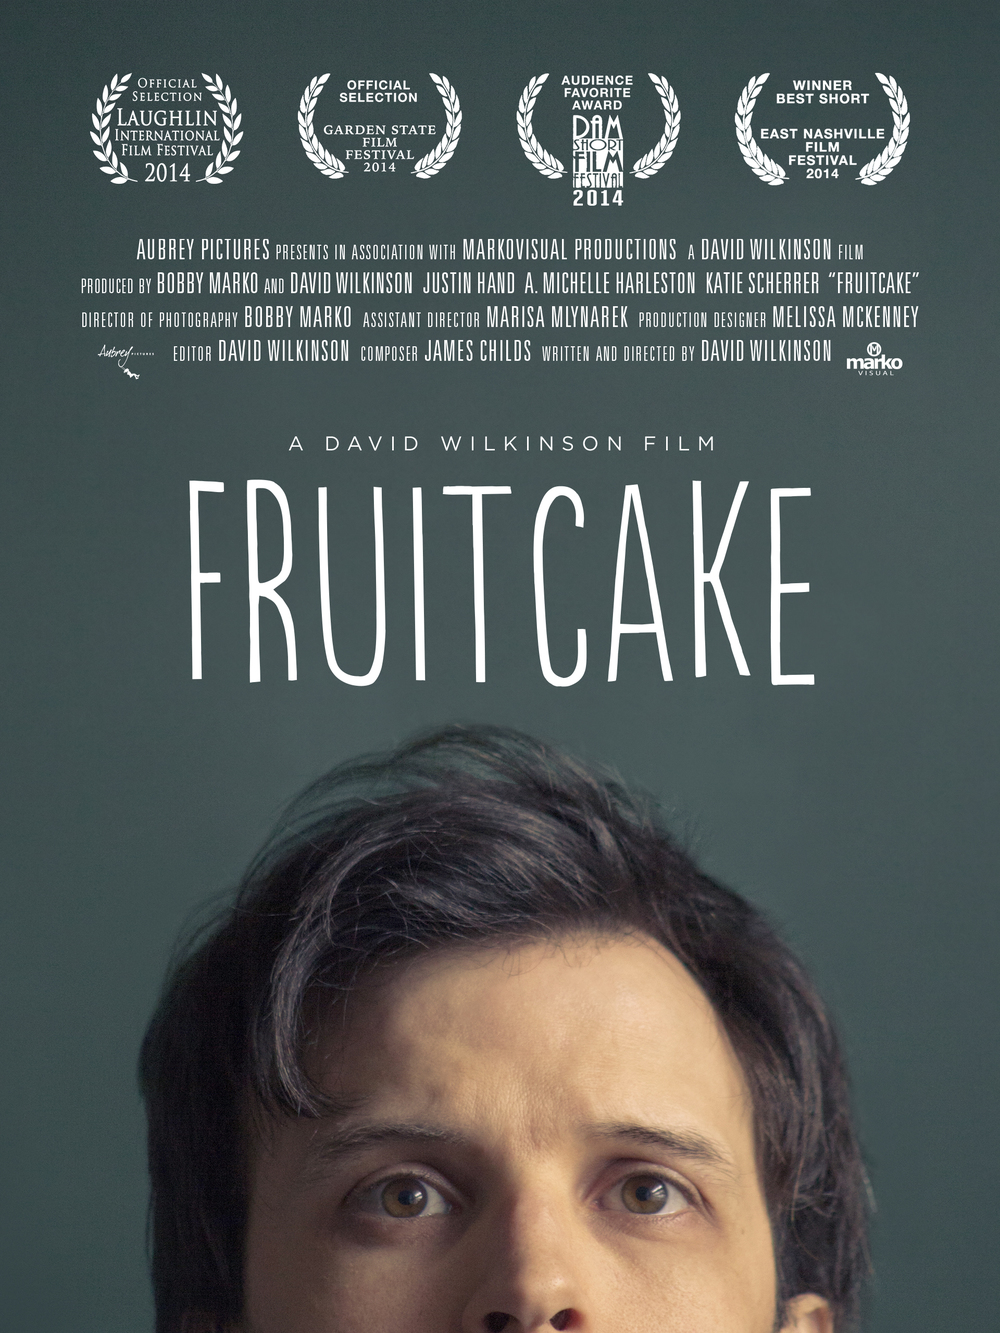 FRUITCAKE is a short film about a middle-aged man, Adam, and his unorthodox search for community. Preceding and during filming, I handled production design, ...